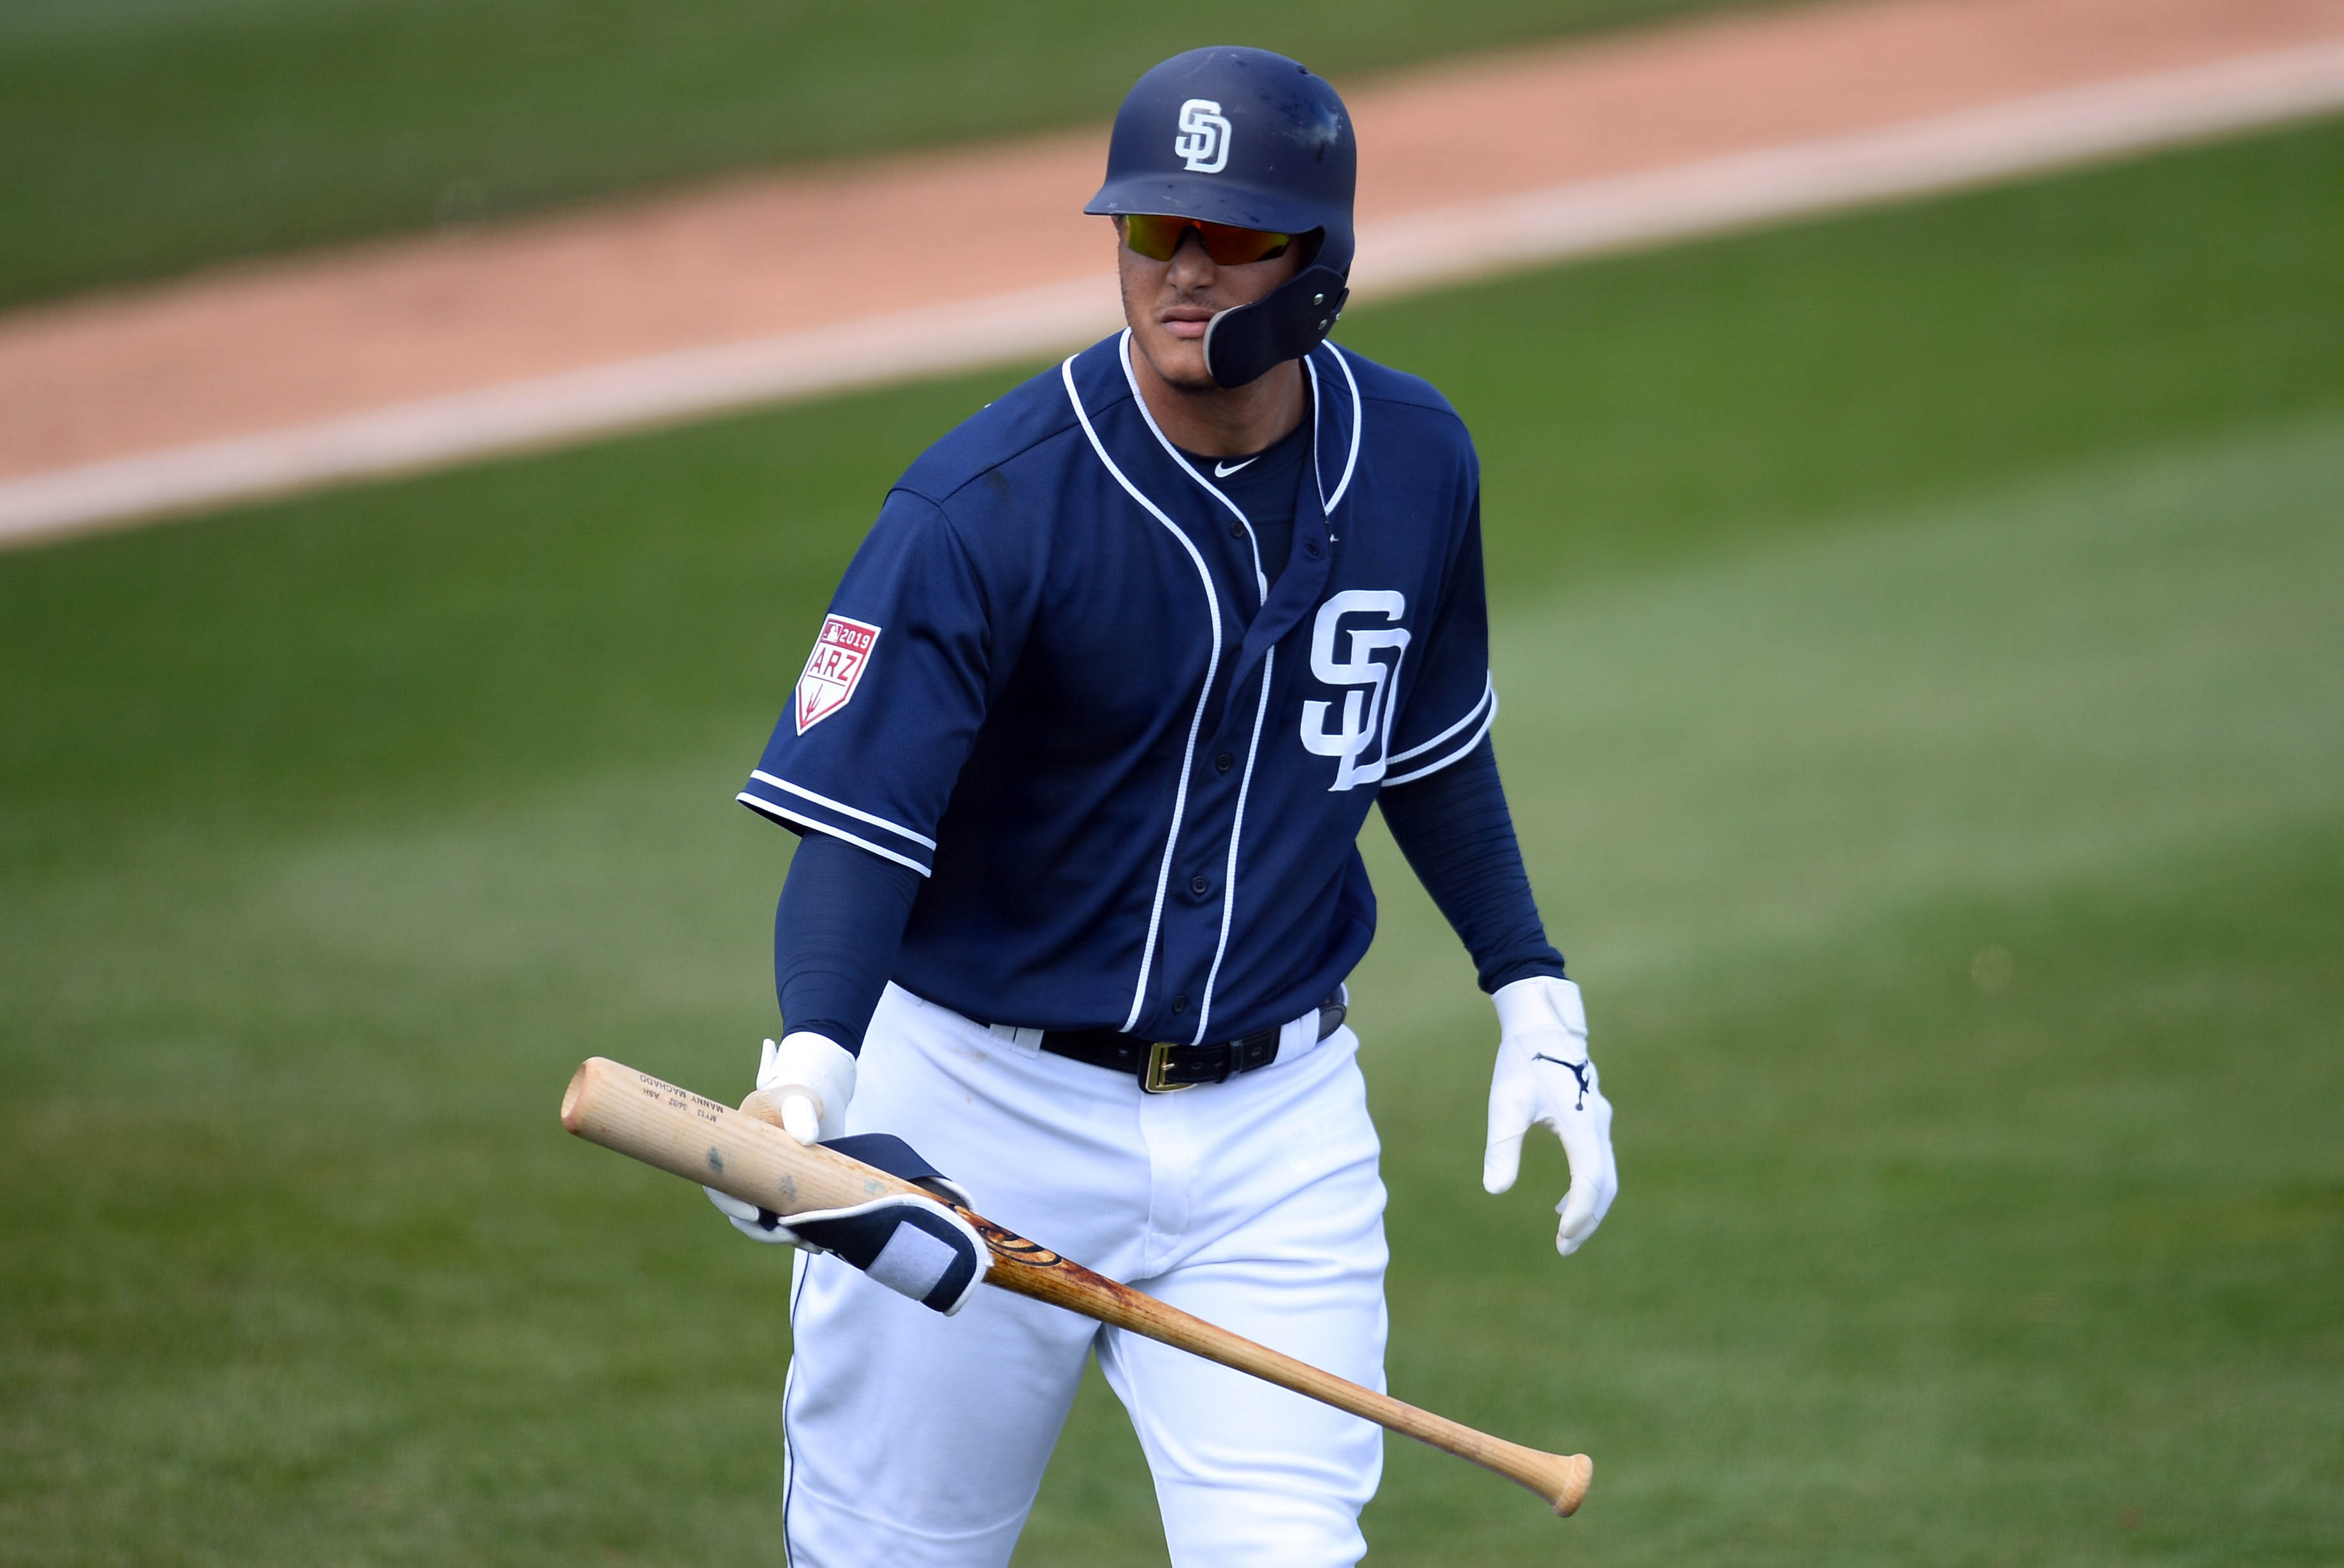 Manny Machado crushes balls for Padres, takes field at Spring Training for first time (Video)